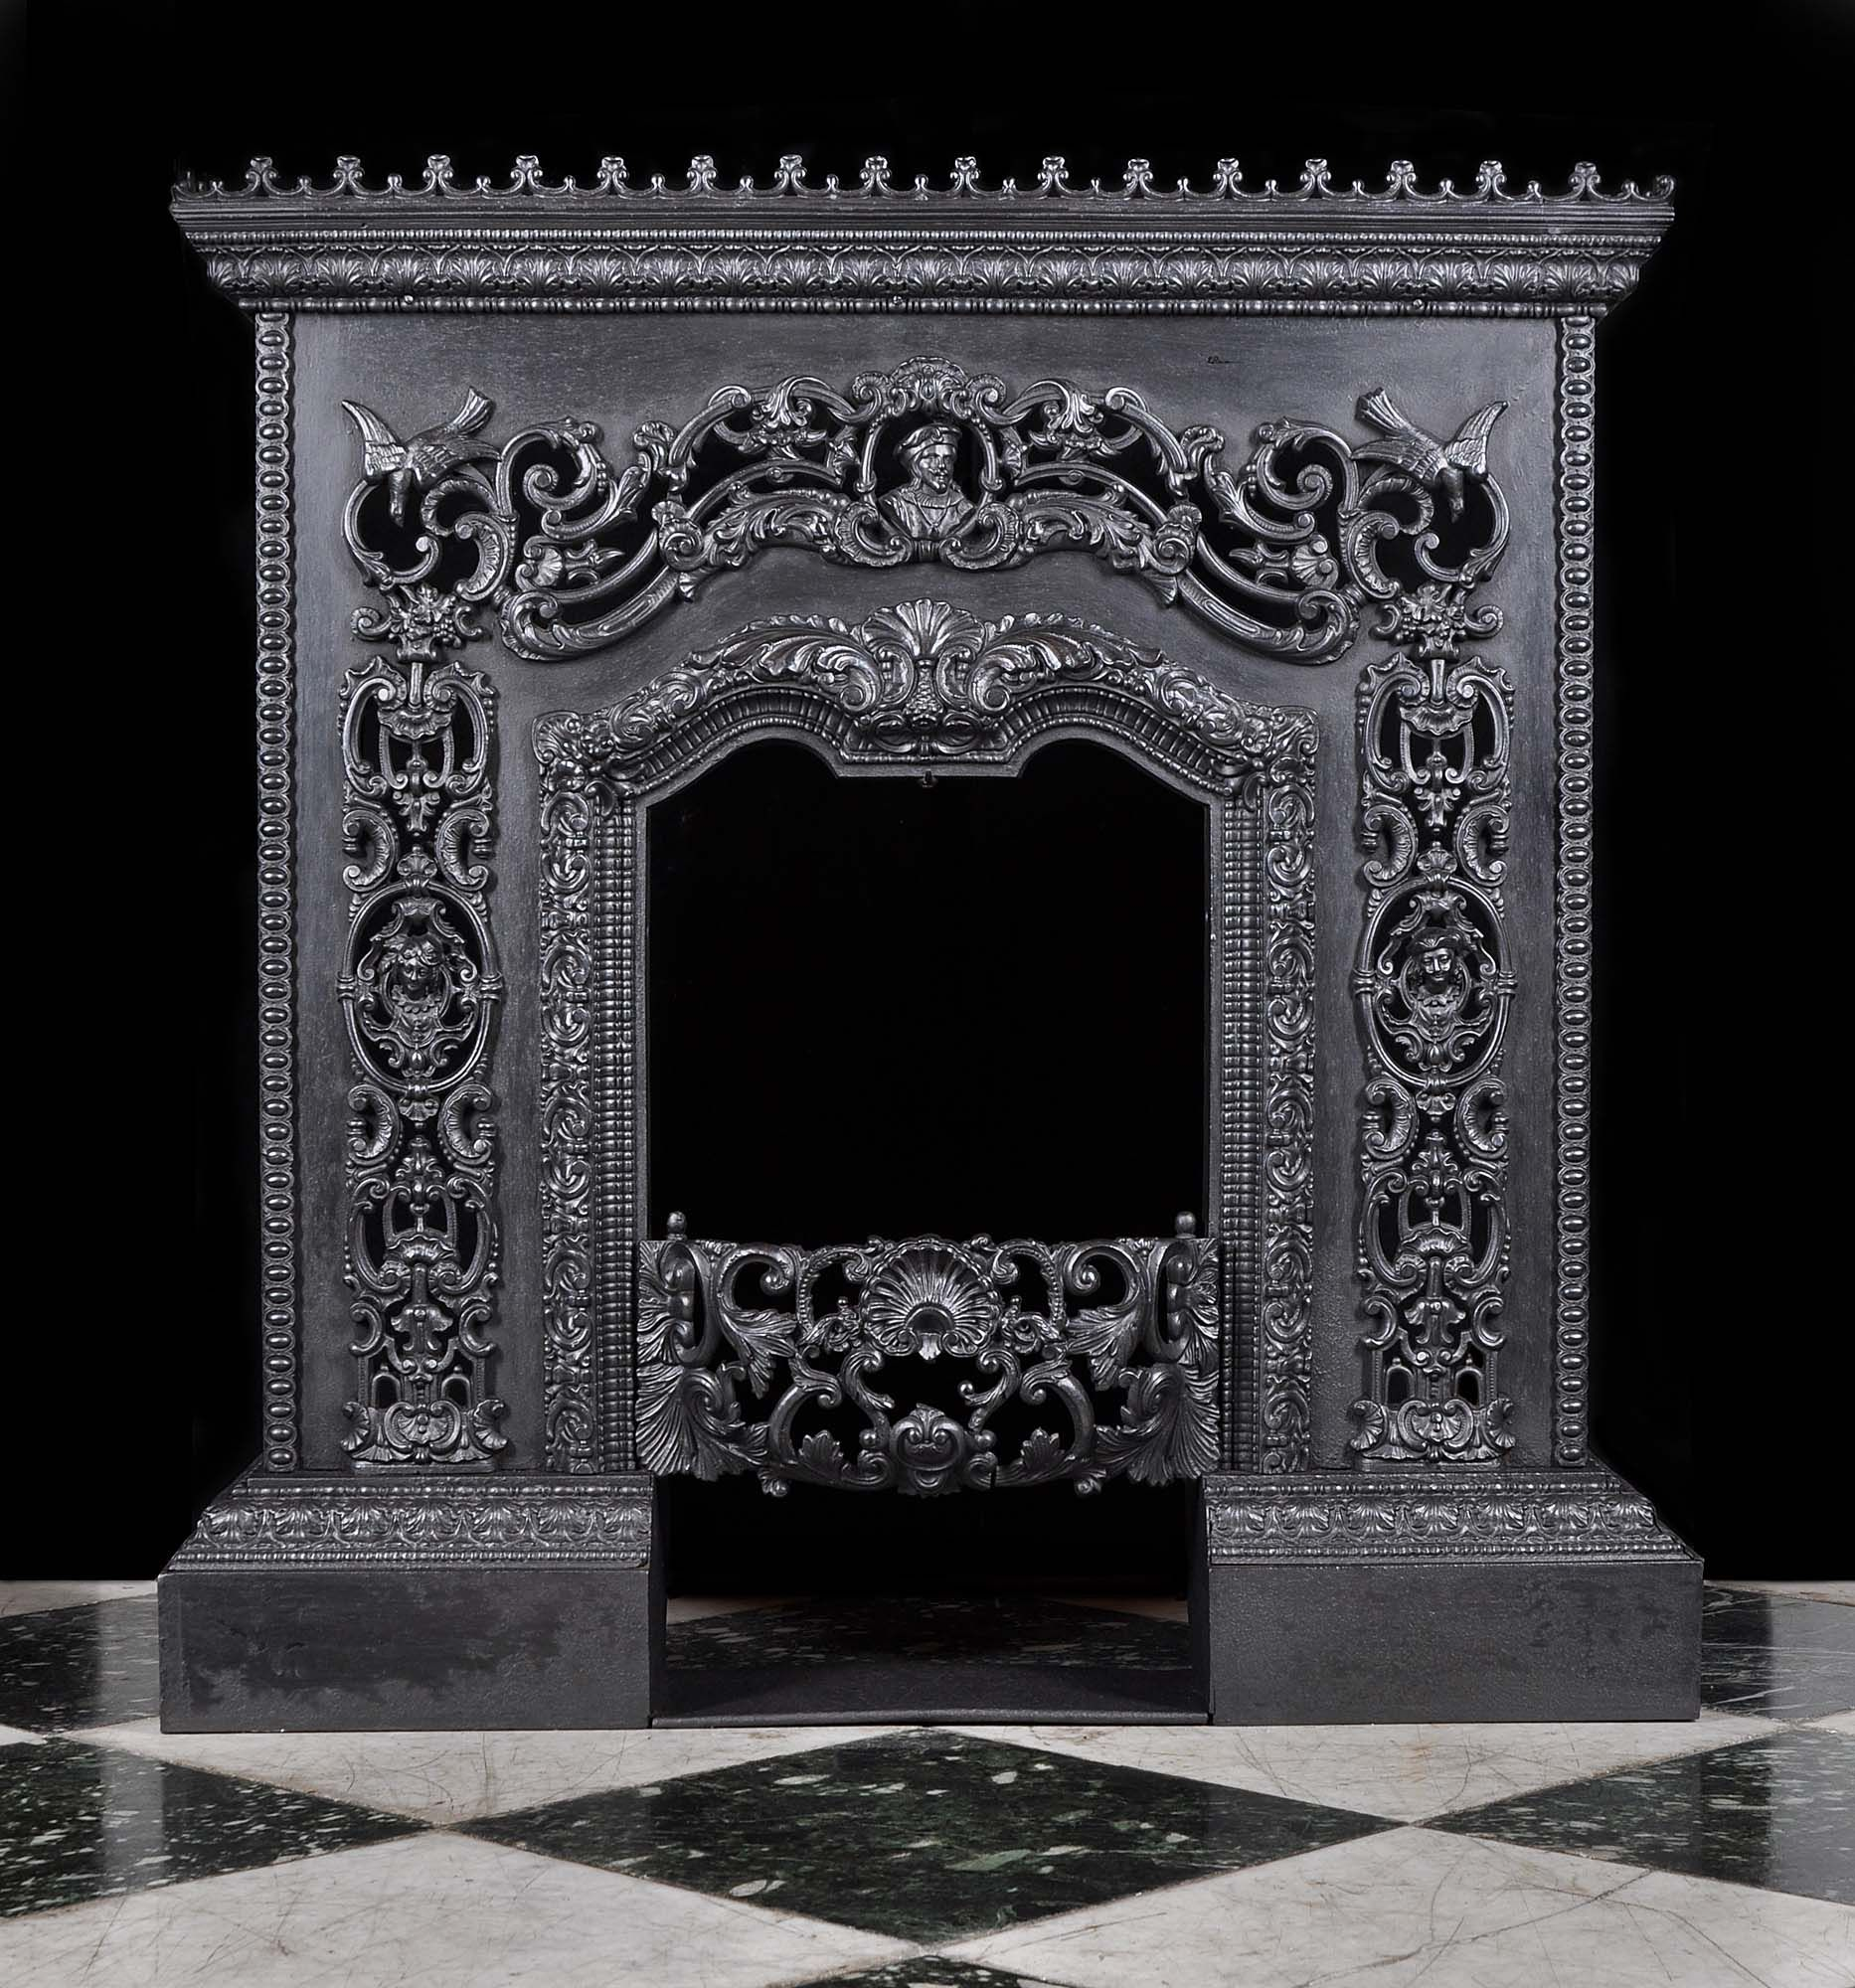 Cast Iron Fireplace In The French Italian Renaissance Style With